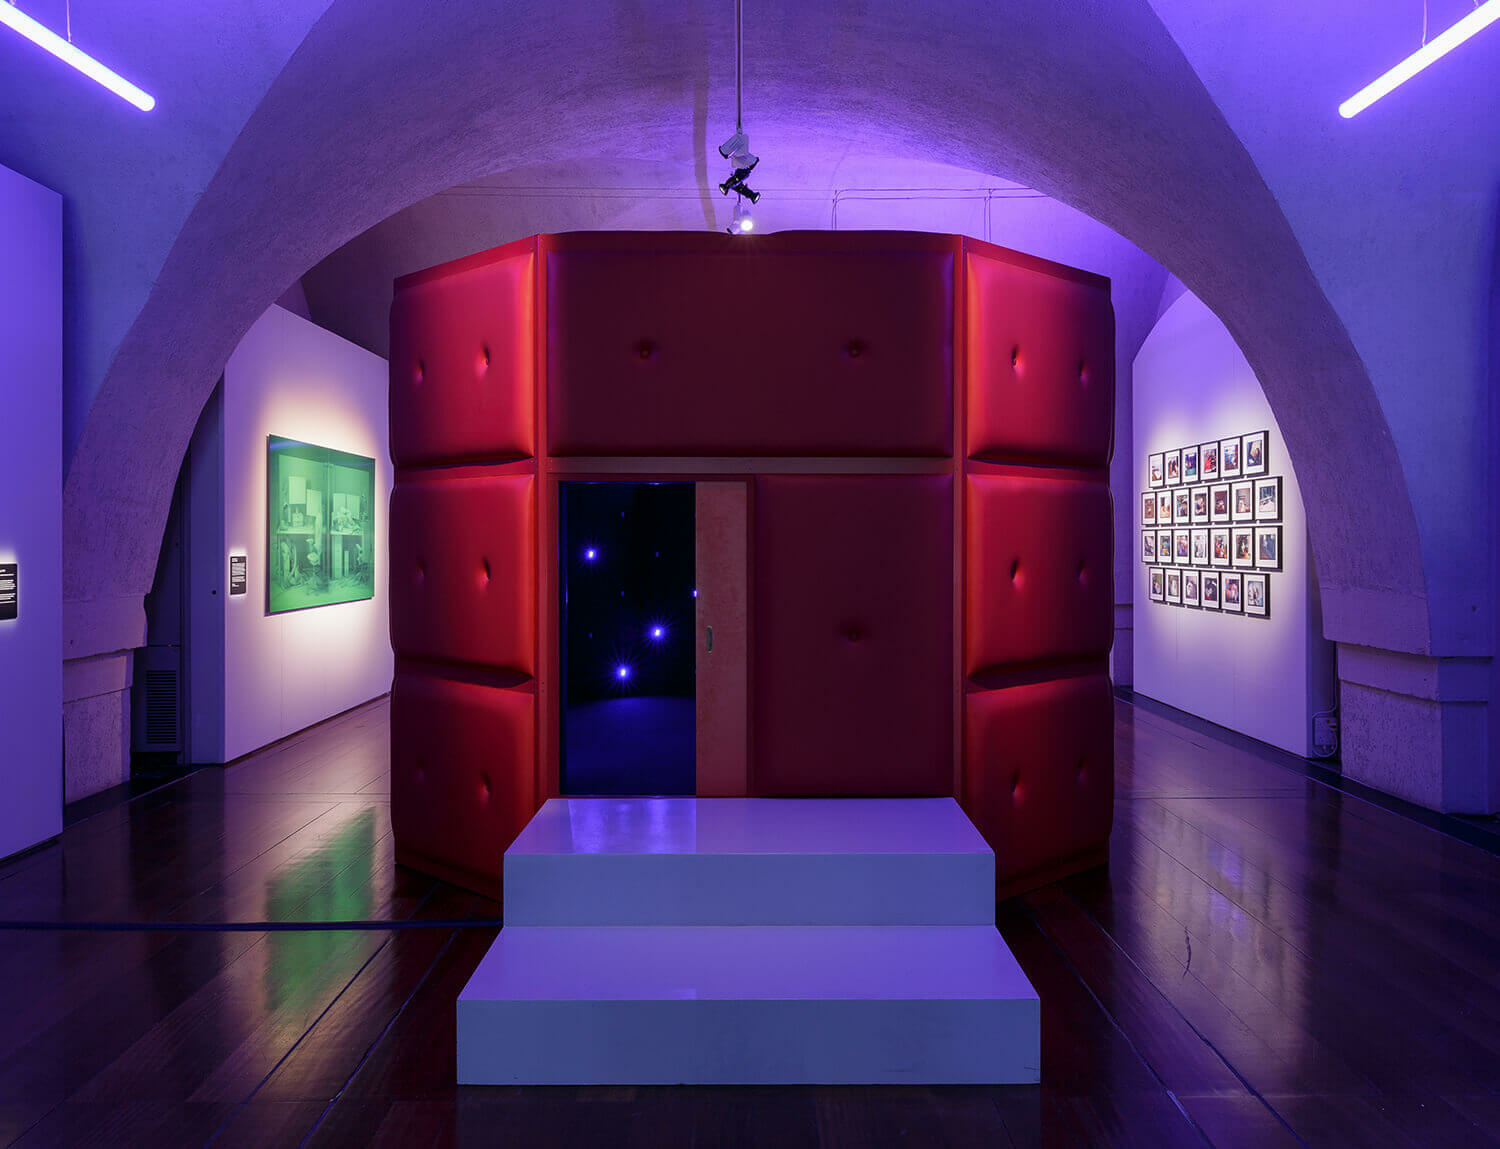 Tatsuo Miyajima and Susan Hiller included in '24/7' exhibition at Somerset House